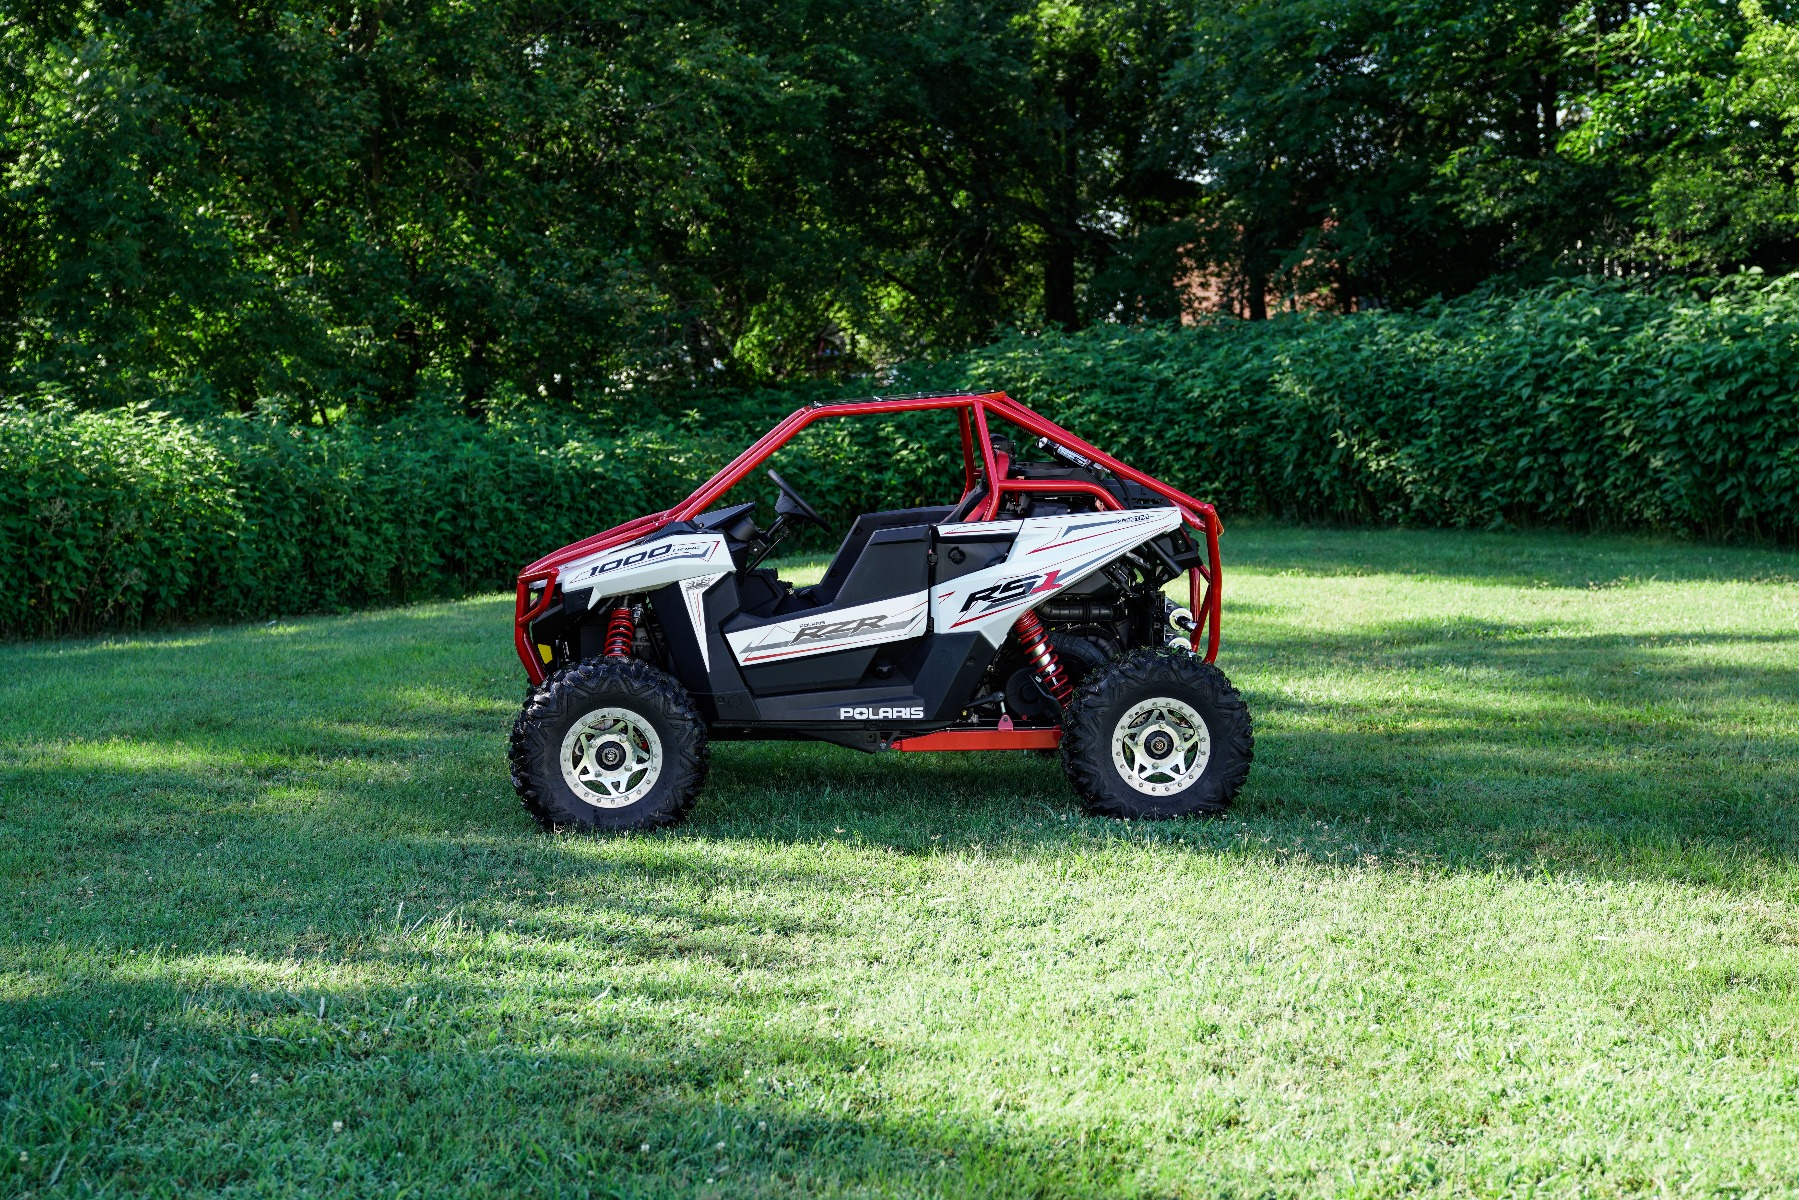 Polaris RZR RS1 Roll Cage in grass Image 1